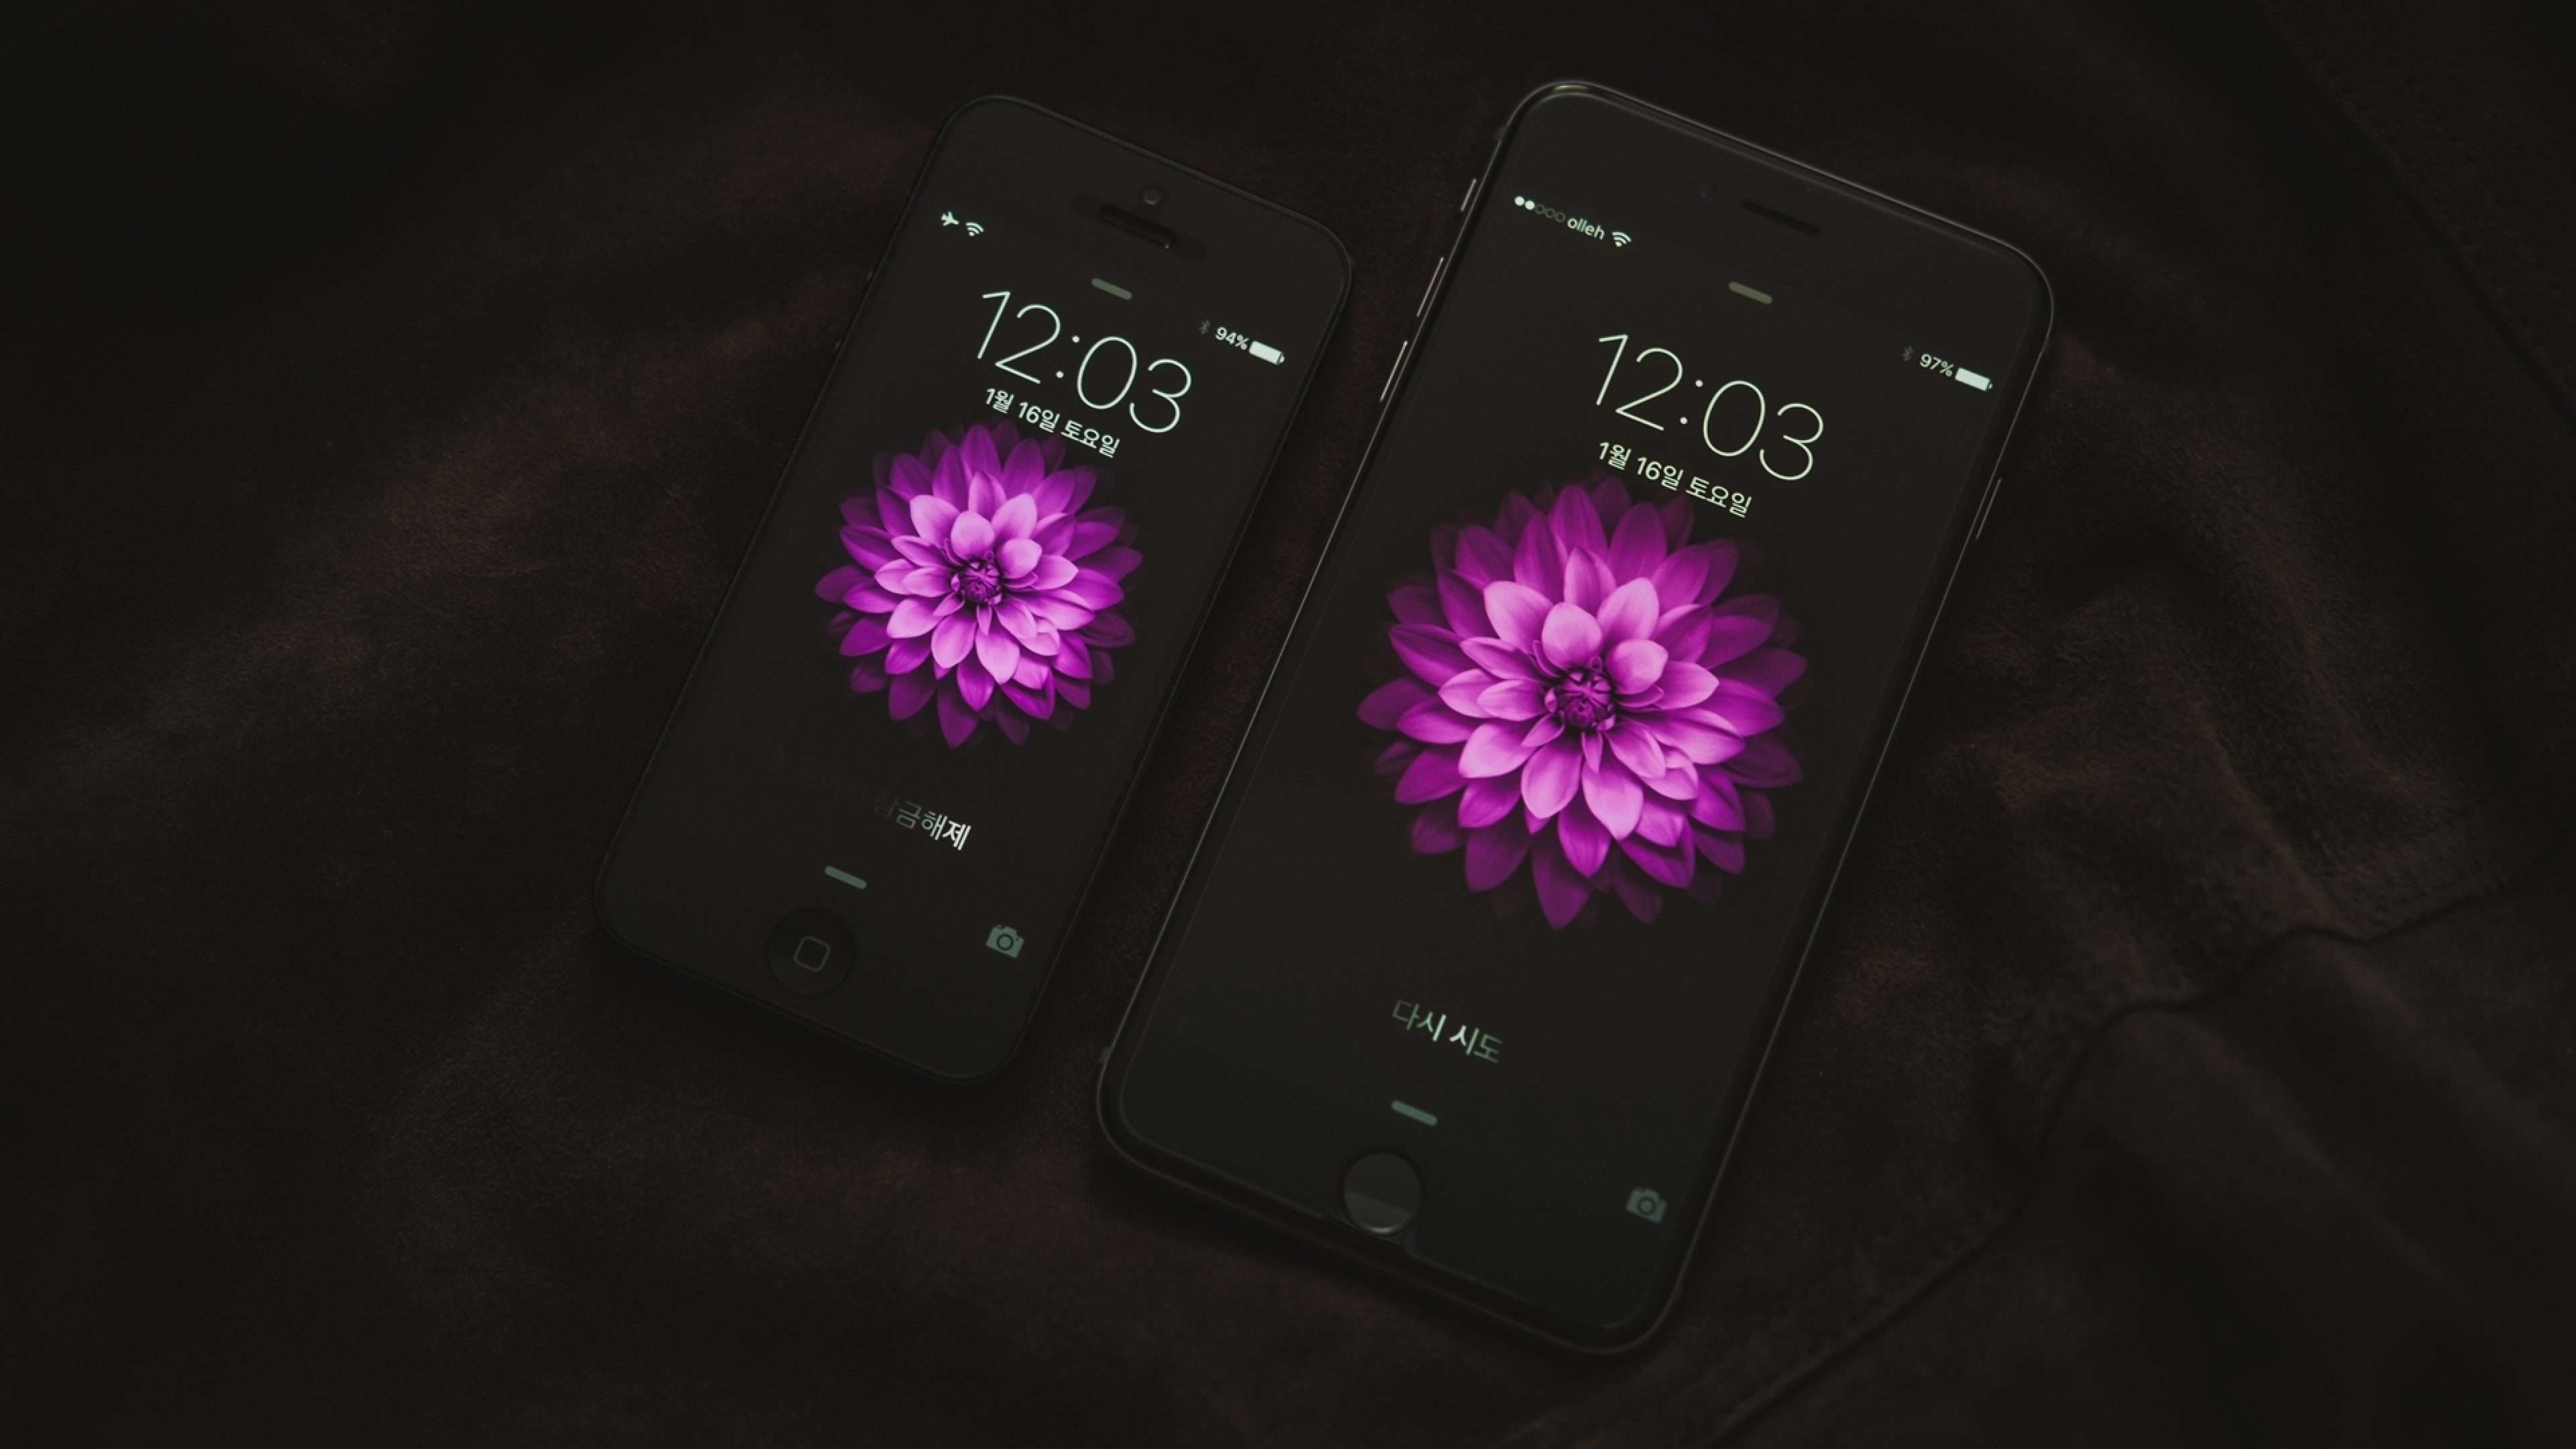 Wallpaper apple, iphone 6, display, touch screen